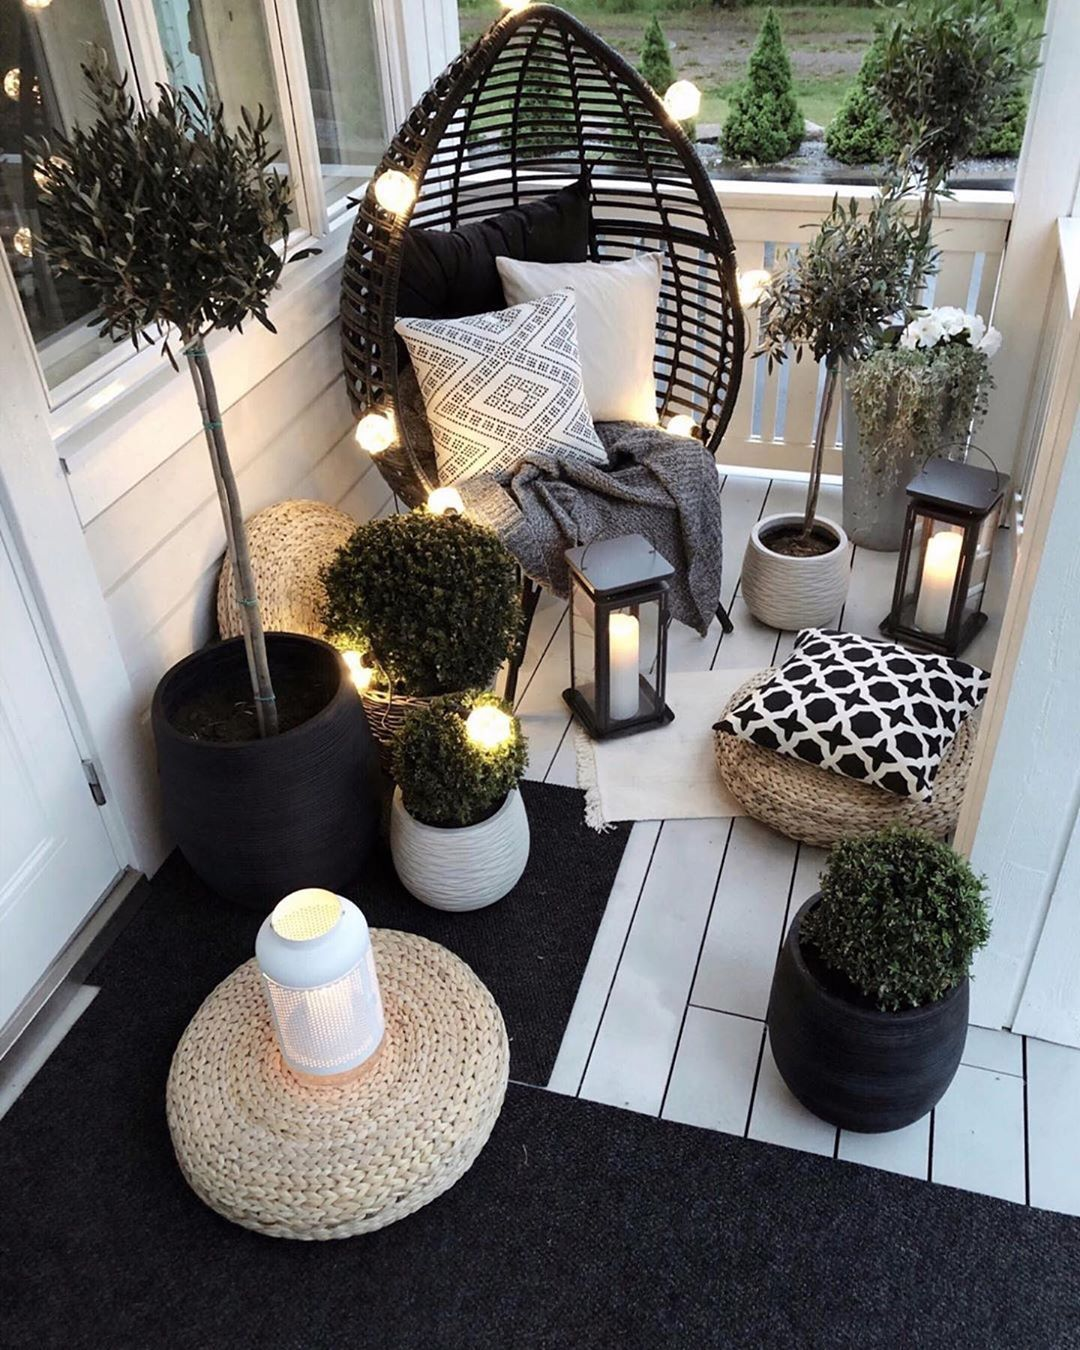 Photo of 15 Ways to Make Your Small Balcony Space Feel Like A Backyard Oasis #Space #Smal…